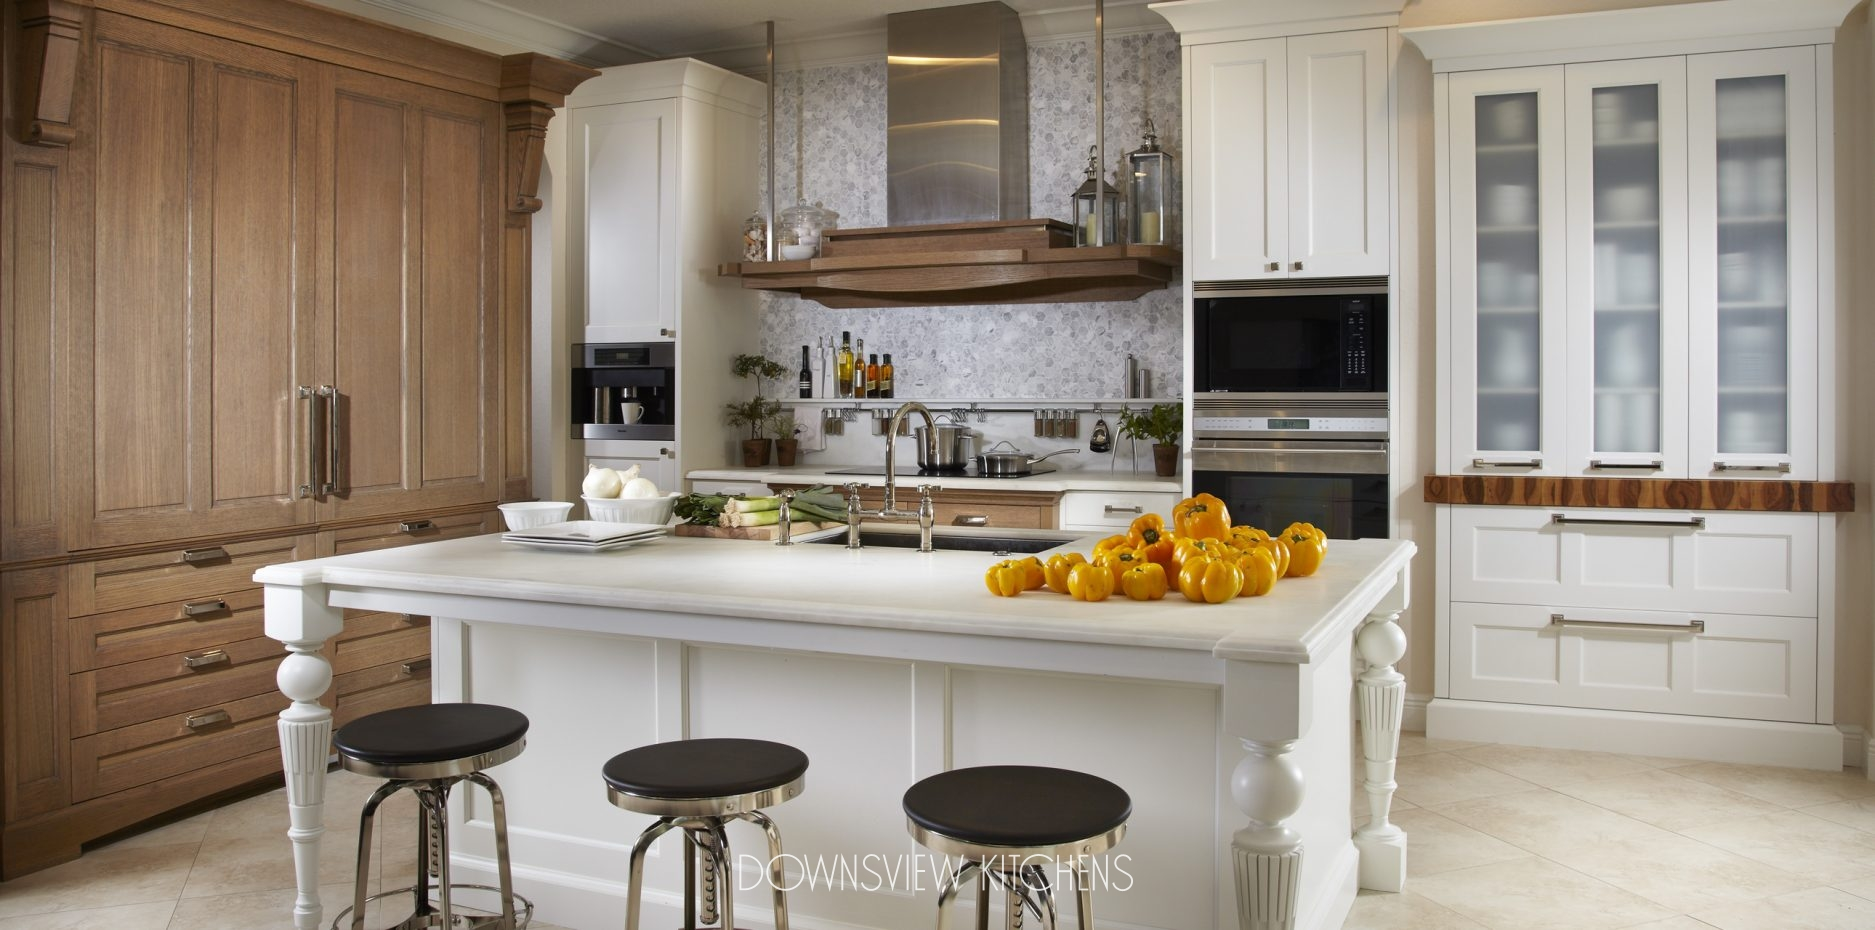 COMFORT ZONE Downsview Kitchens And Fine Custom Cabinetry - Downsview kitchens